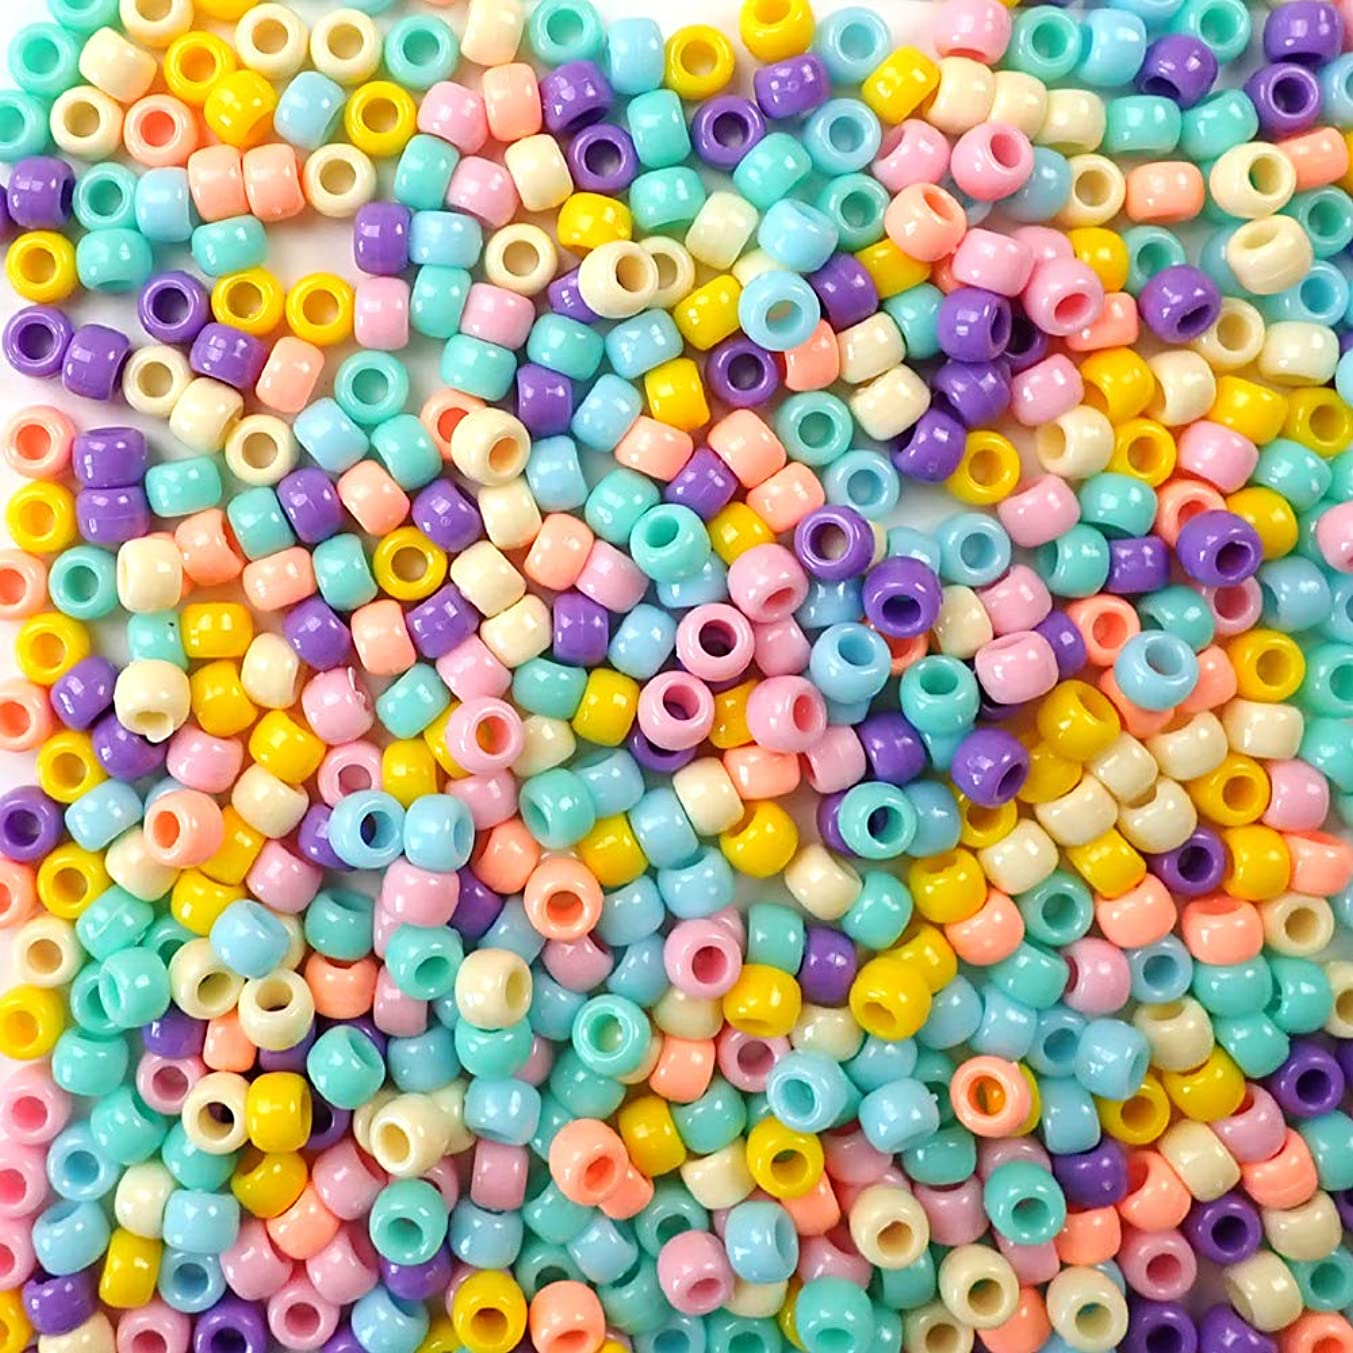 Pretty Pastels Opaque Multicolor Mix Plastic Craft Pony Beads, 6 x 9mm, 500 Beads